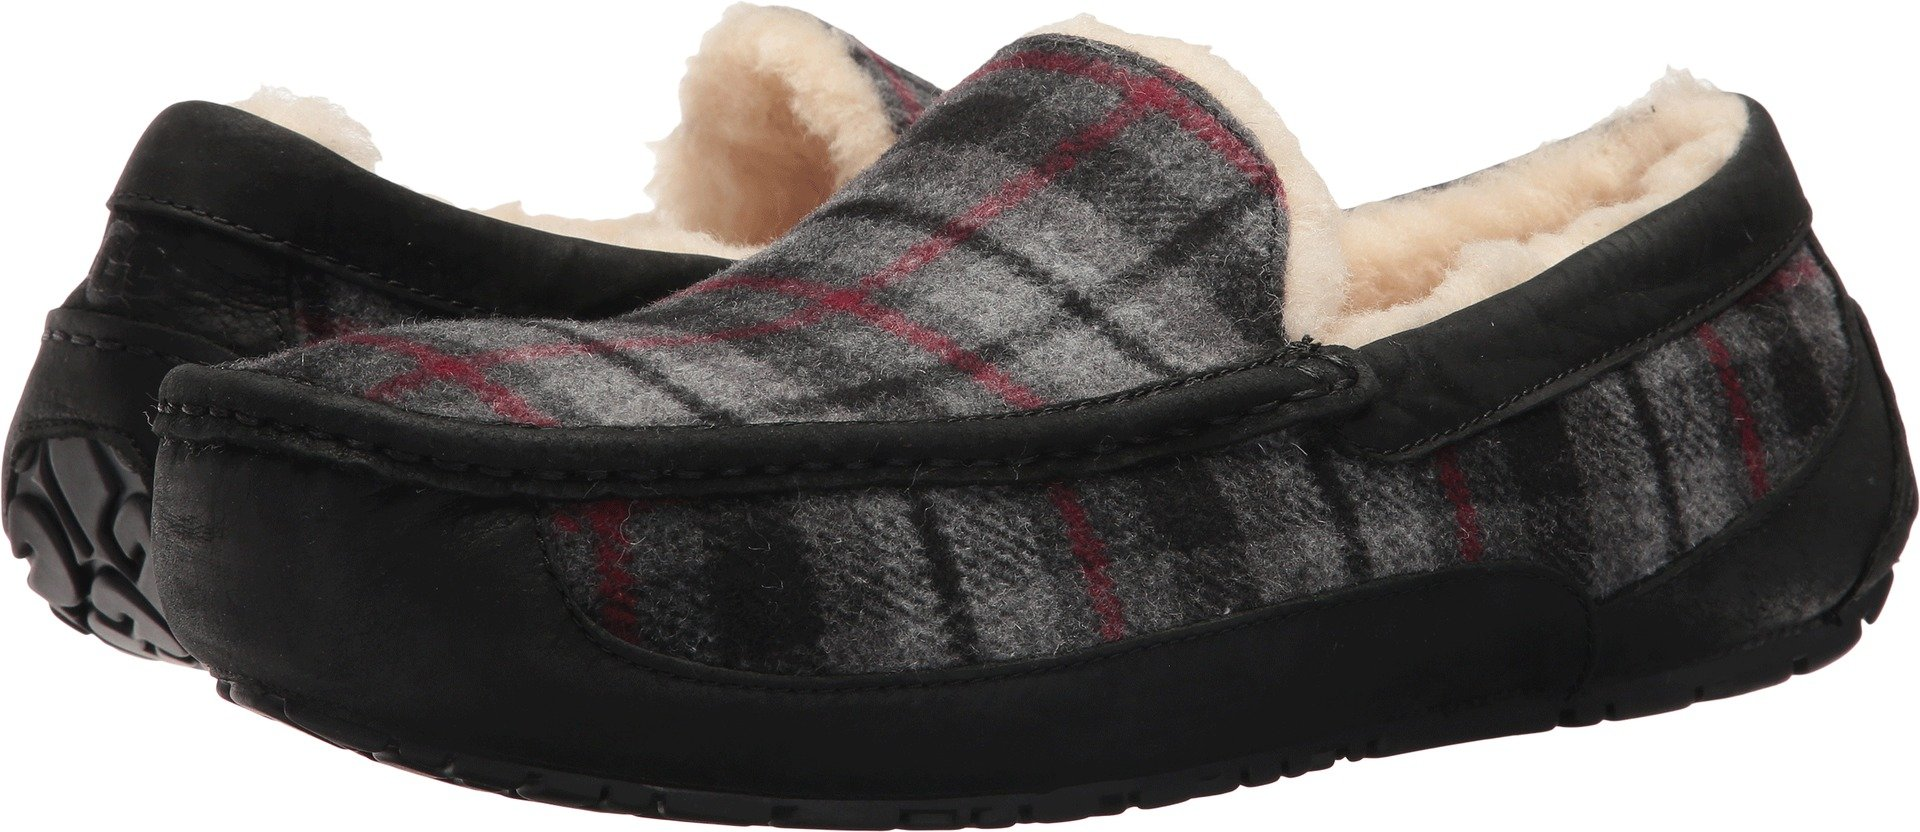 UGG Men's Ascot Tartan Plaid Slipper by UGG